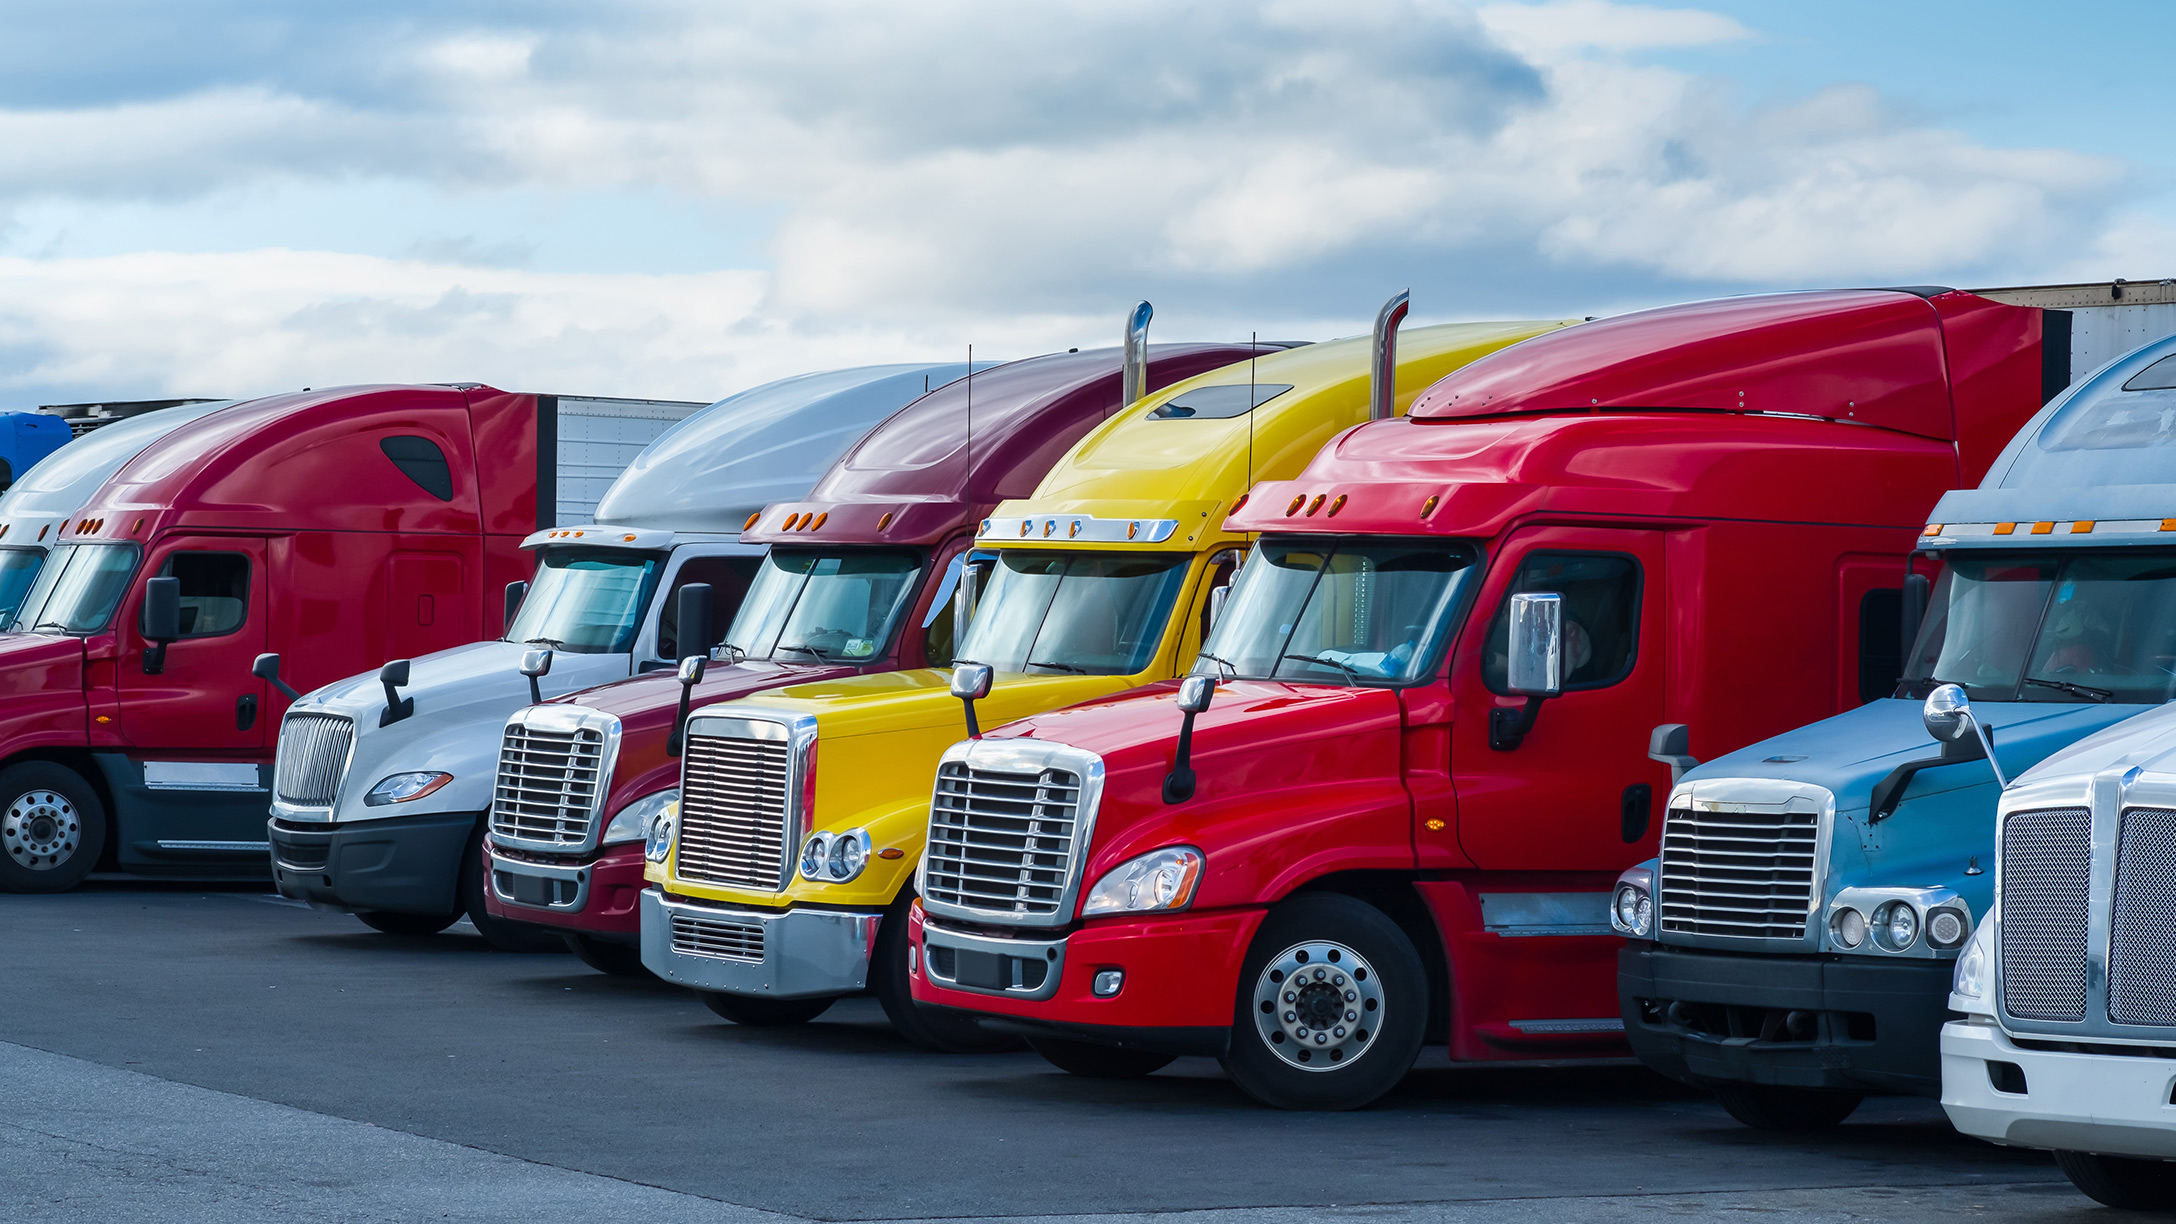 Colourful trucks standing together